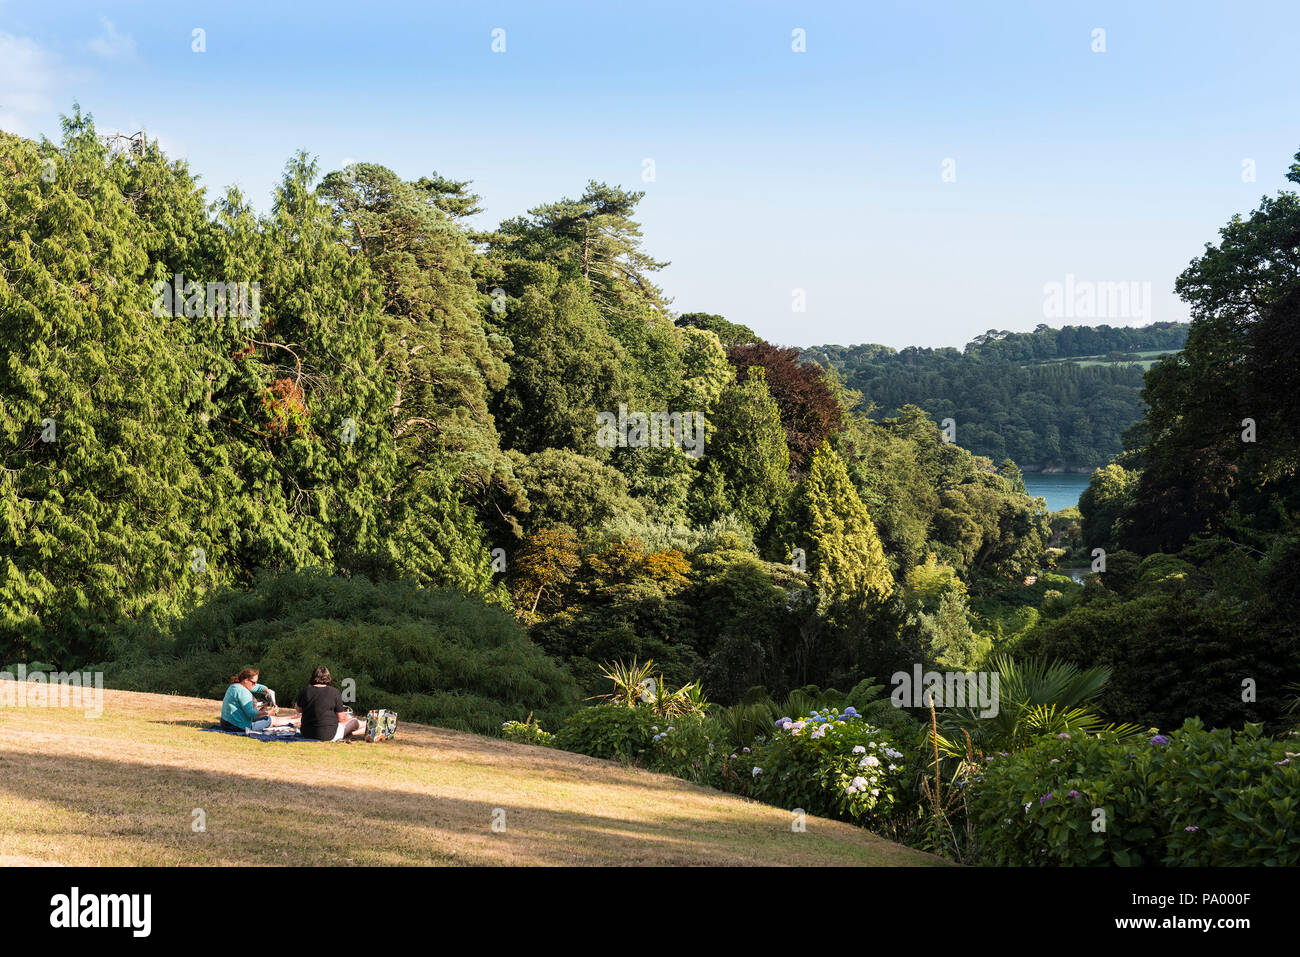 People enjoying a picnic on the lawn at Trebah Garden in Cornwall. - Stock Image